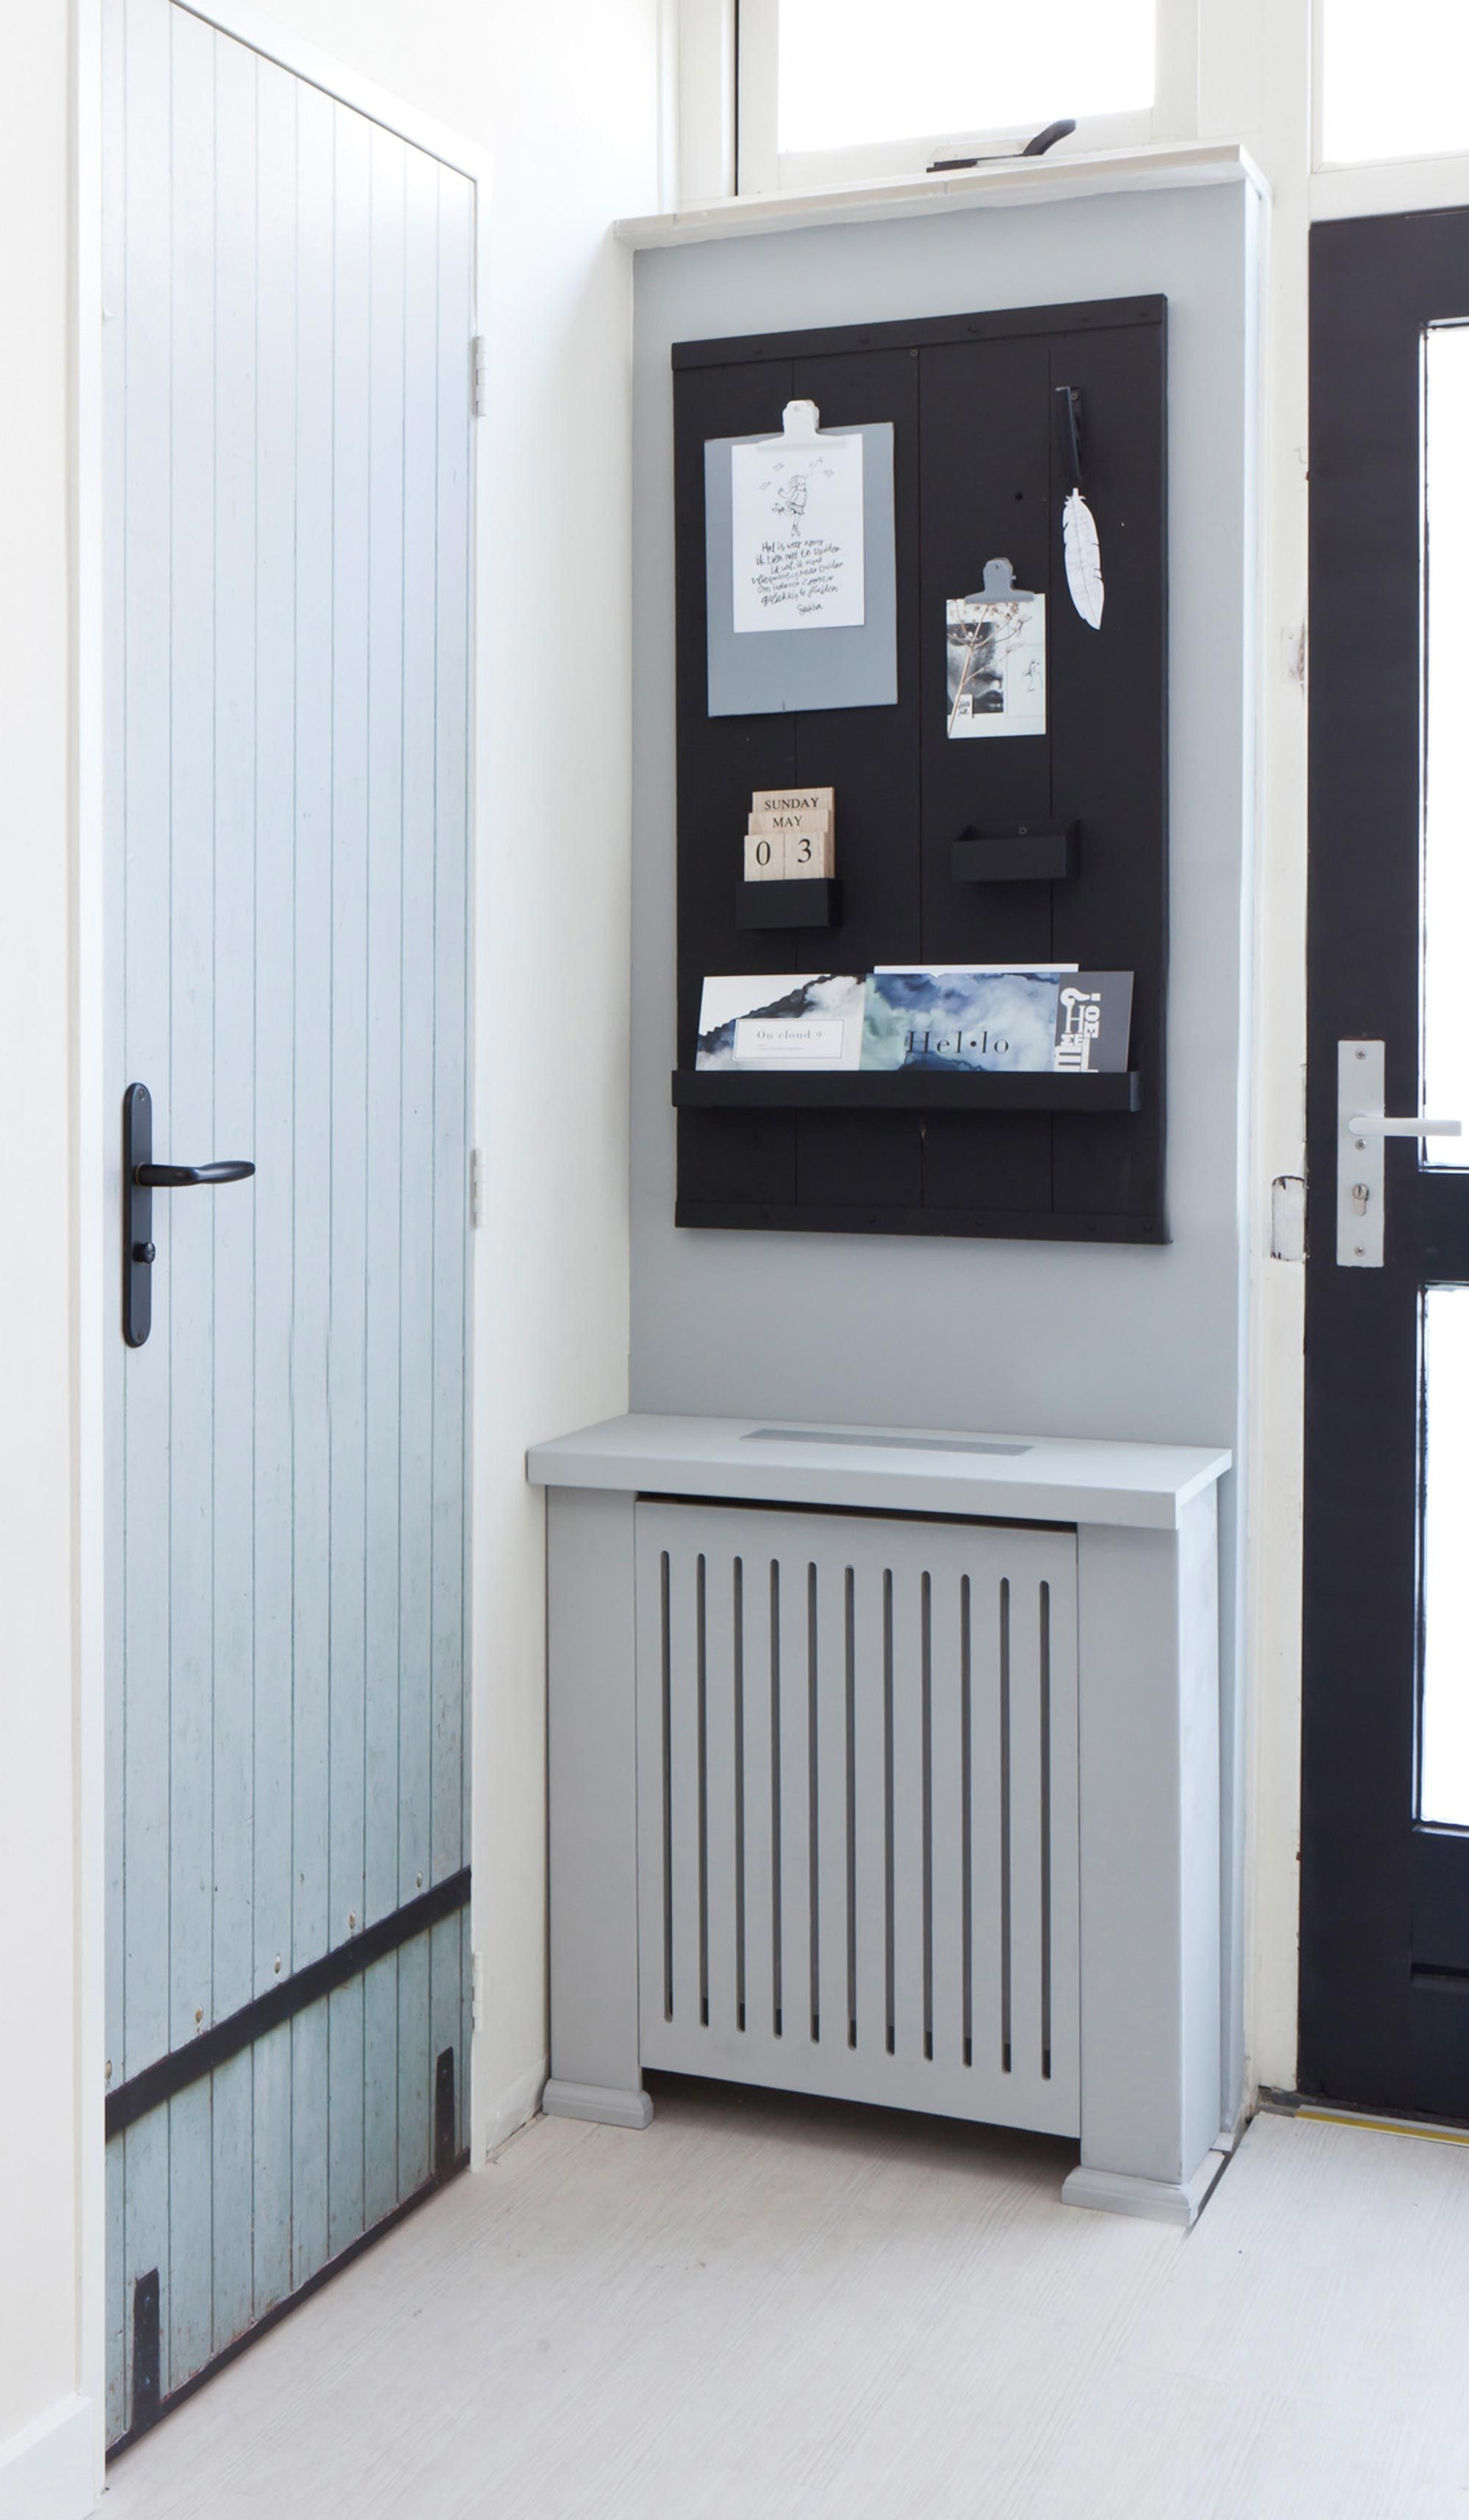 Radiators, van and doors on pinterest